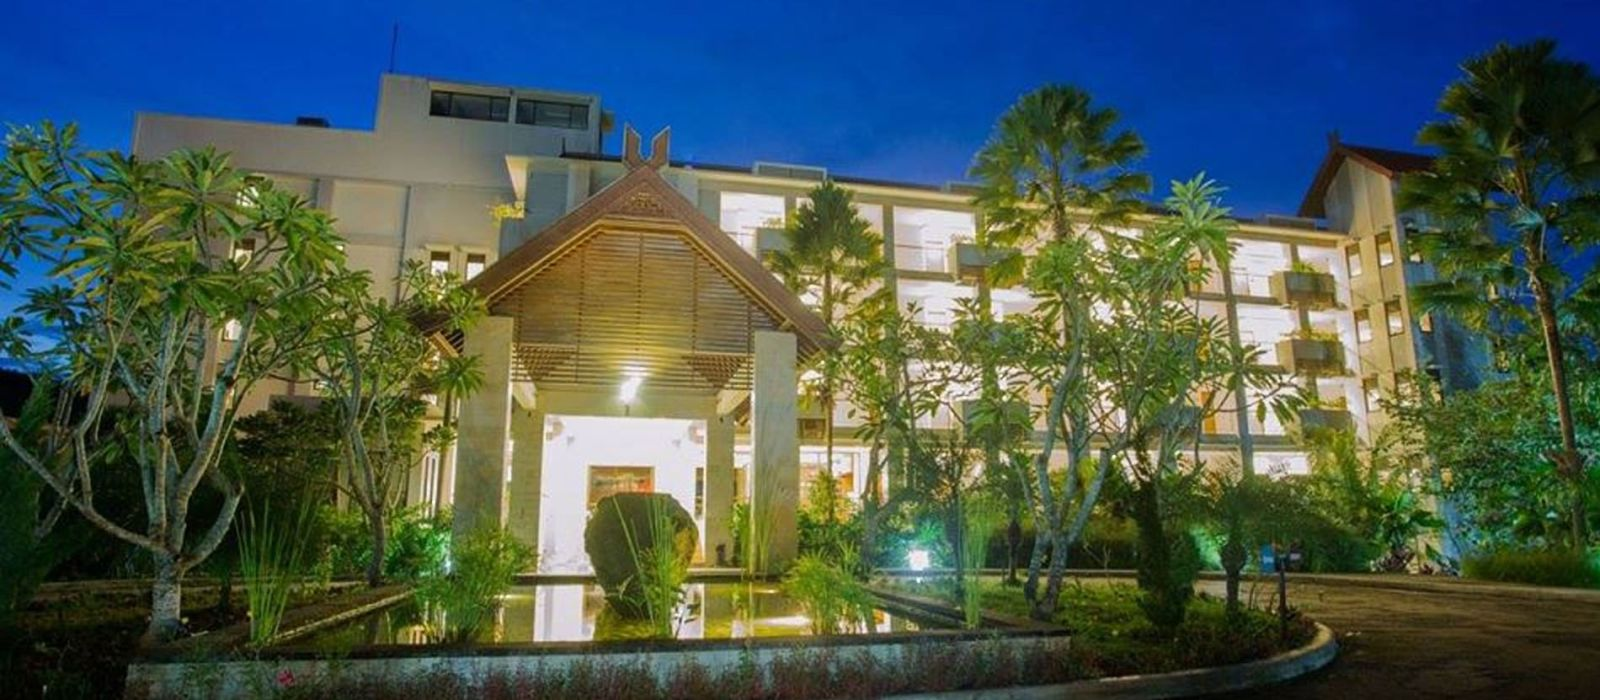 Hotel Bintang Flores    Indonesia